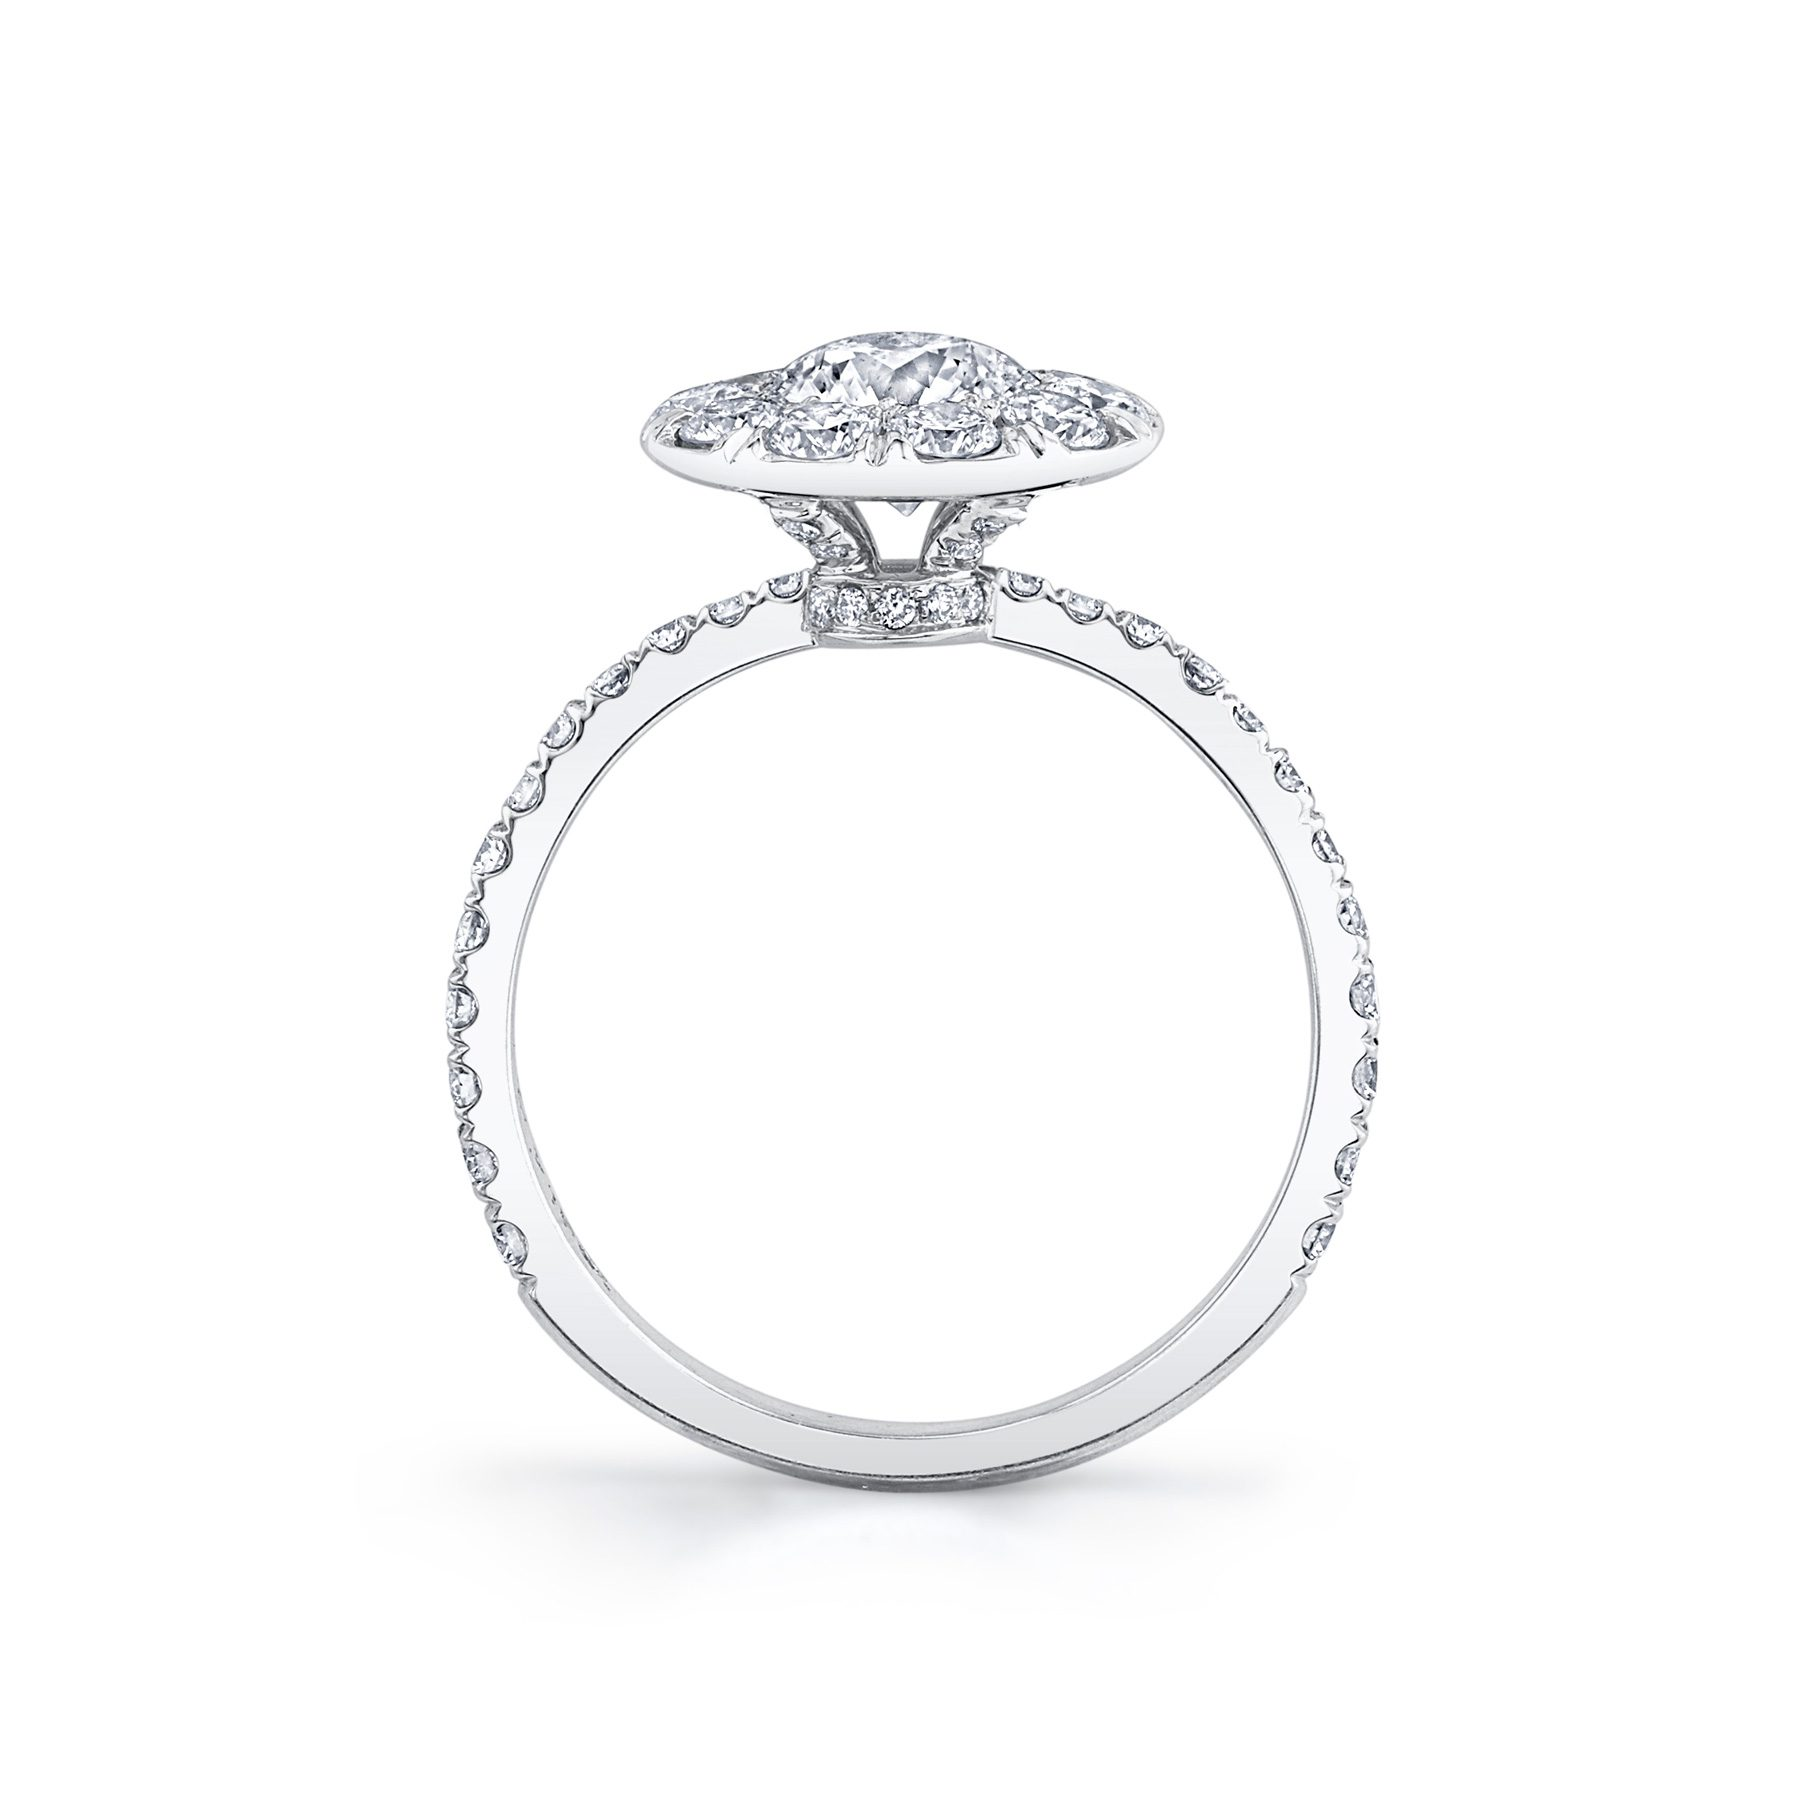 Eloise Floating Round Brilliant Seamless Solitaire® Engagement Ring with diamond pavé in 18k White Gold Standing View by Oui by Jean Dousset